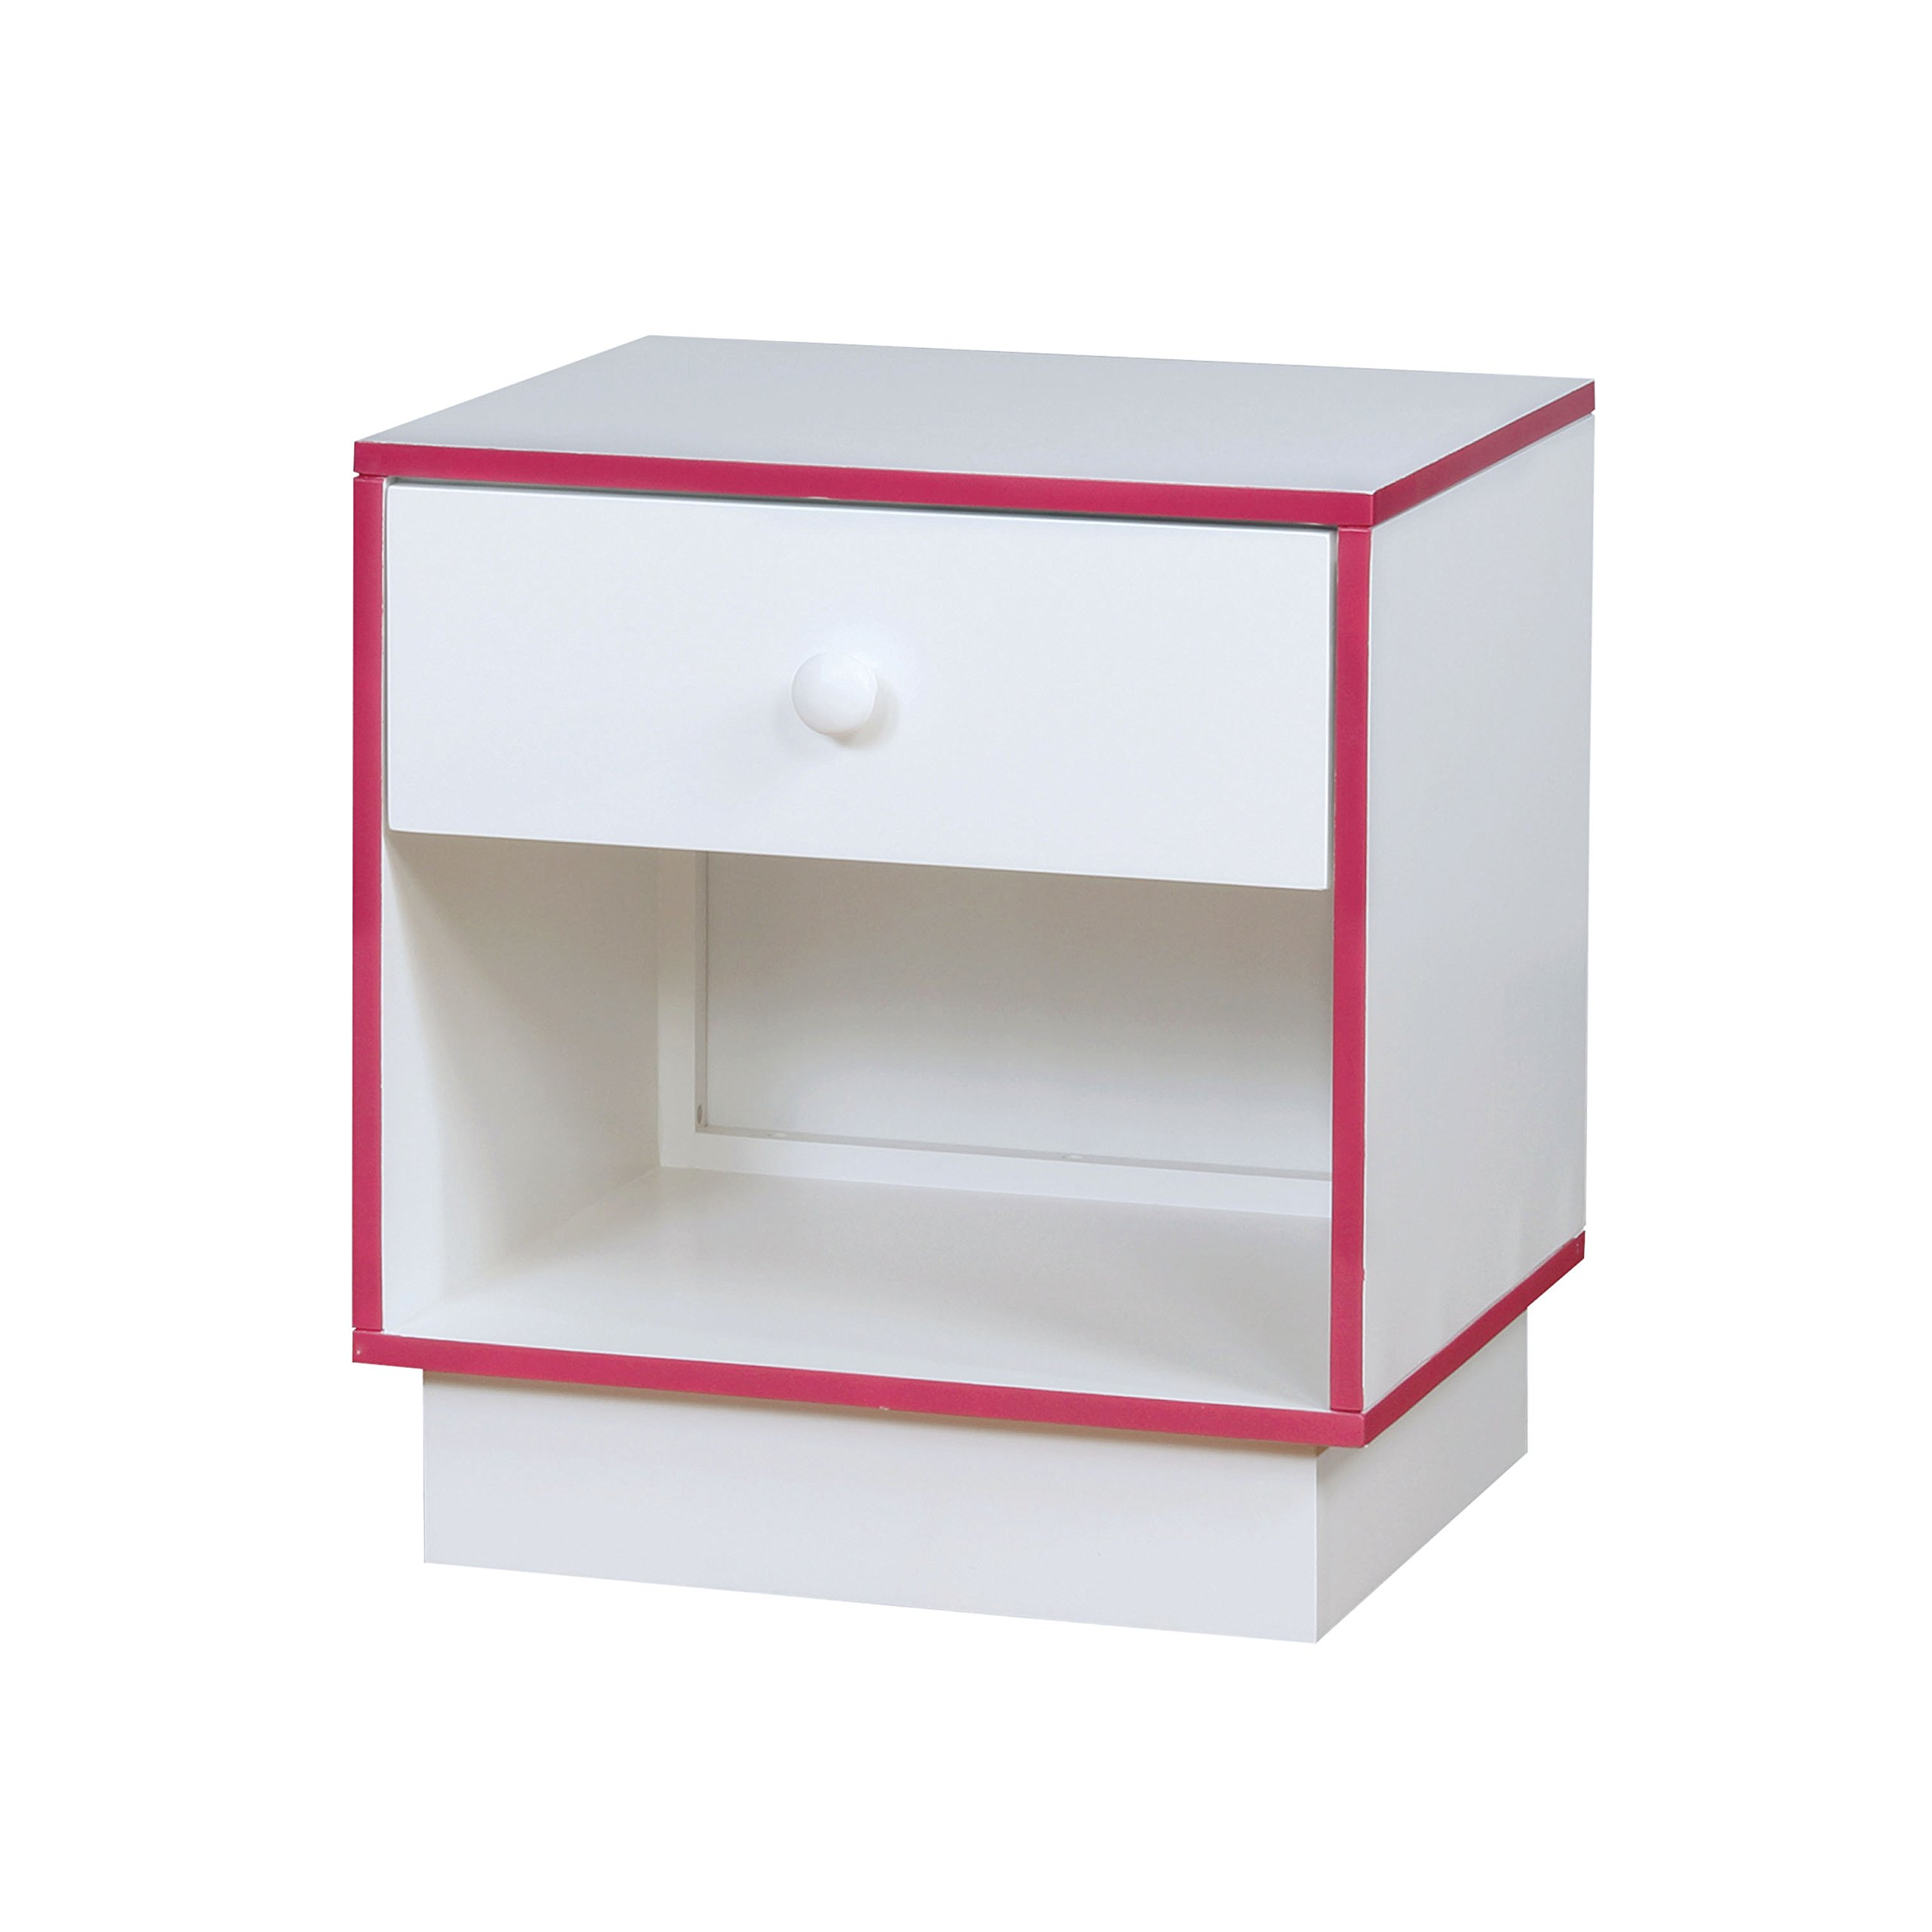 HOMES: Inside + Out IDF-7852PK-N Wexler Nightstand Childrens, Pink/White